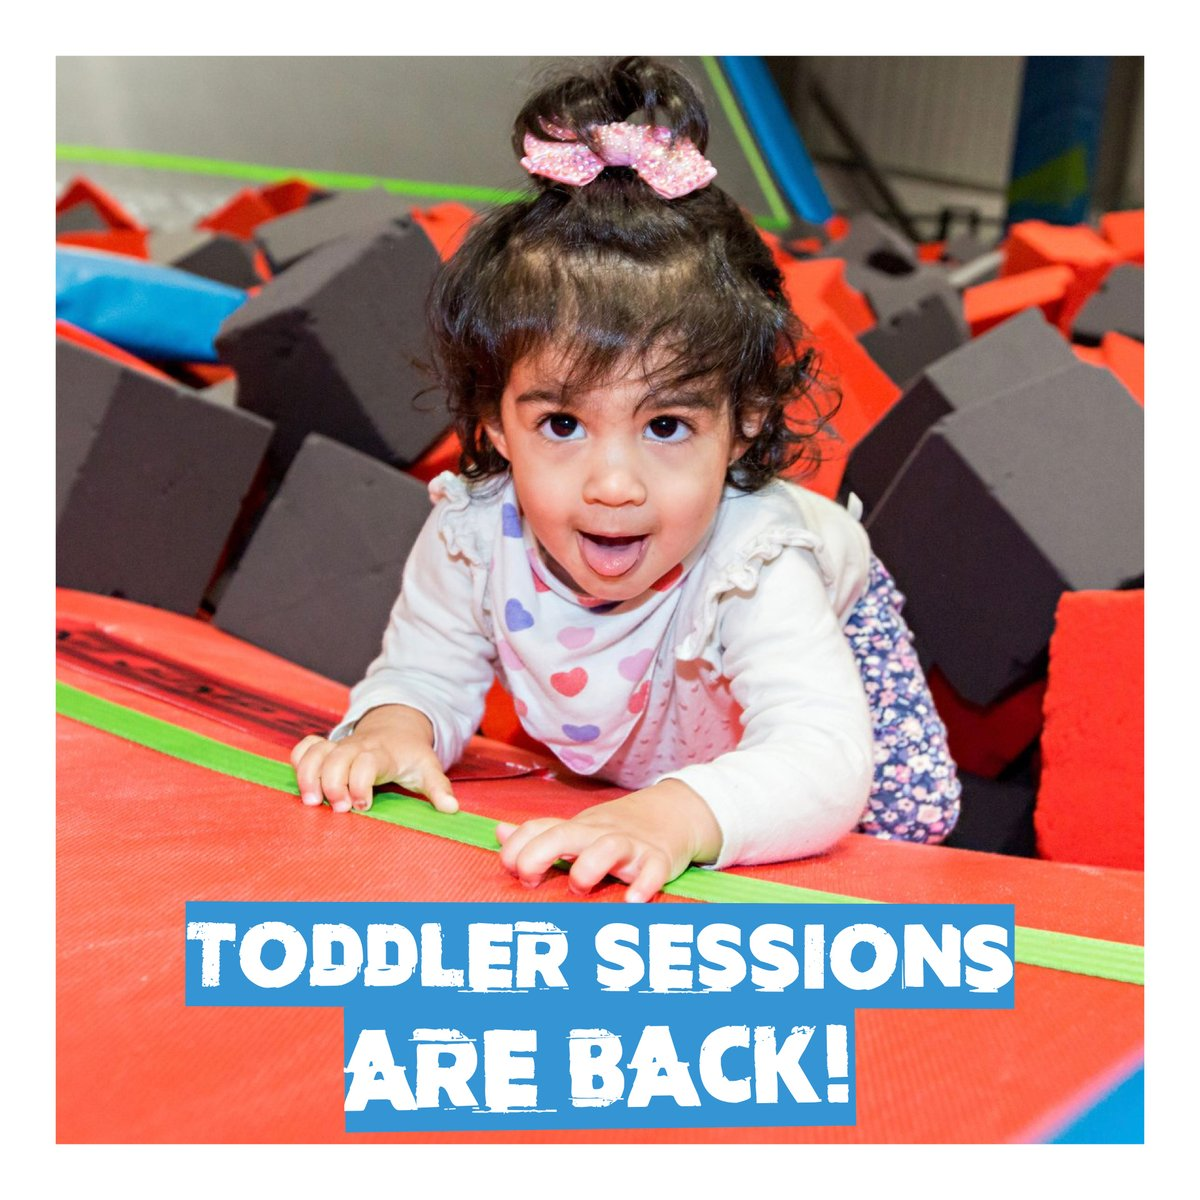 TODDLER SESSIONS ARE BACK  Come along at 10am every Sunday morning to let your little ones burn off some energy!  Book a toddler jump now http://rushuk.com    #rushuk #rushuktrampolinepark #feeltherush #trampolinepark #weareopen #toddlers #sundayfundaypic.twitter.com/KxKLnUXF5s